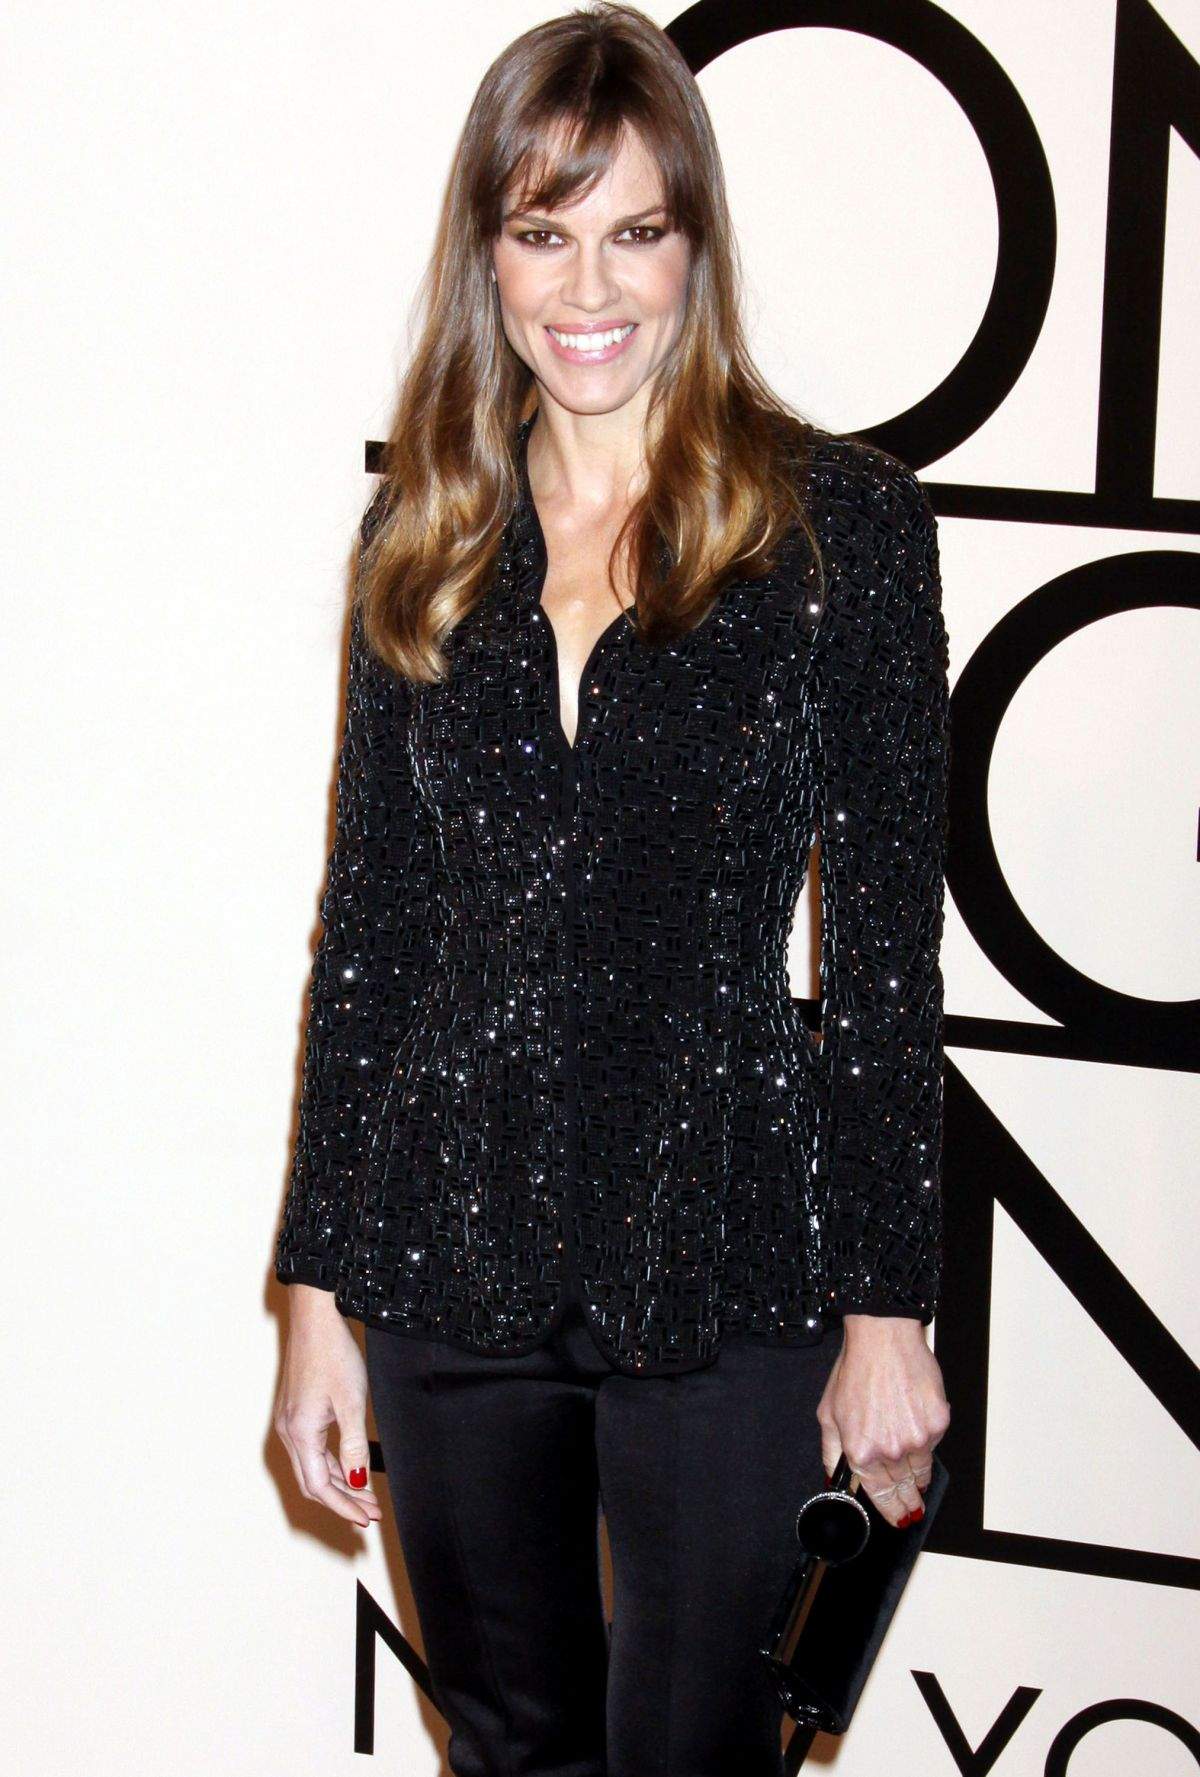 Hilary Swank At Giorgio Armani One Night Only In NYC